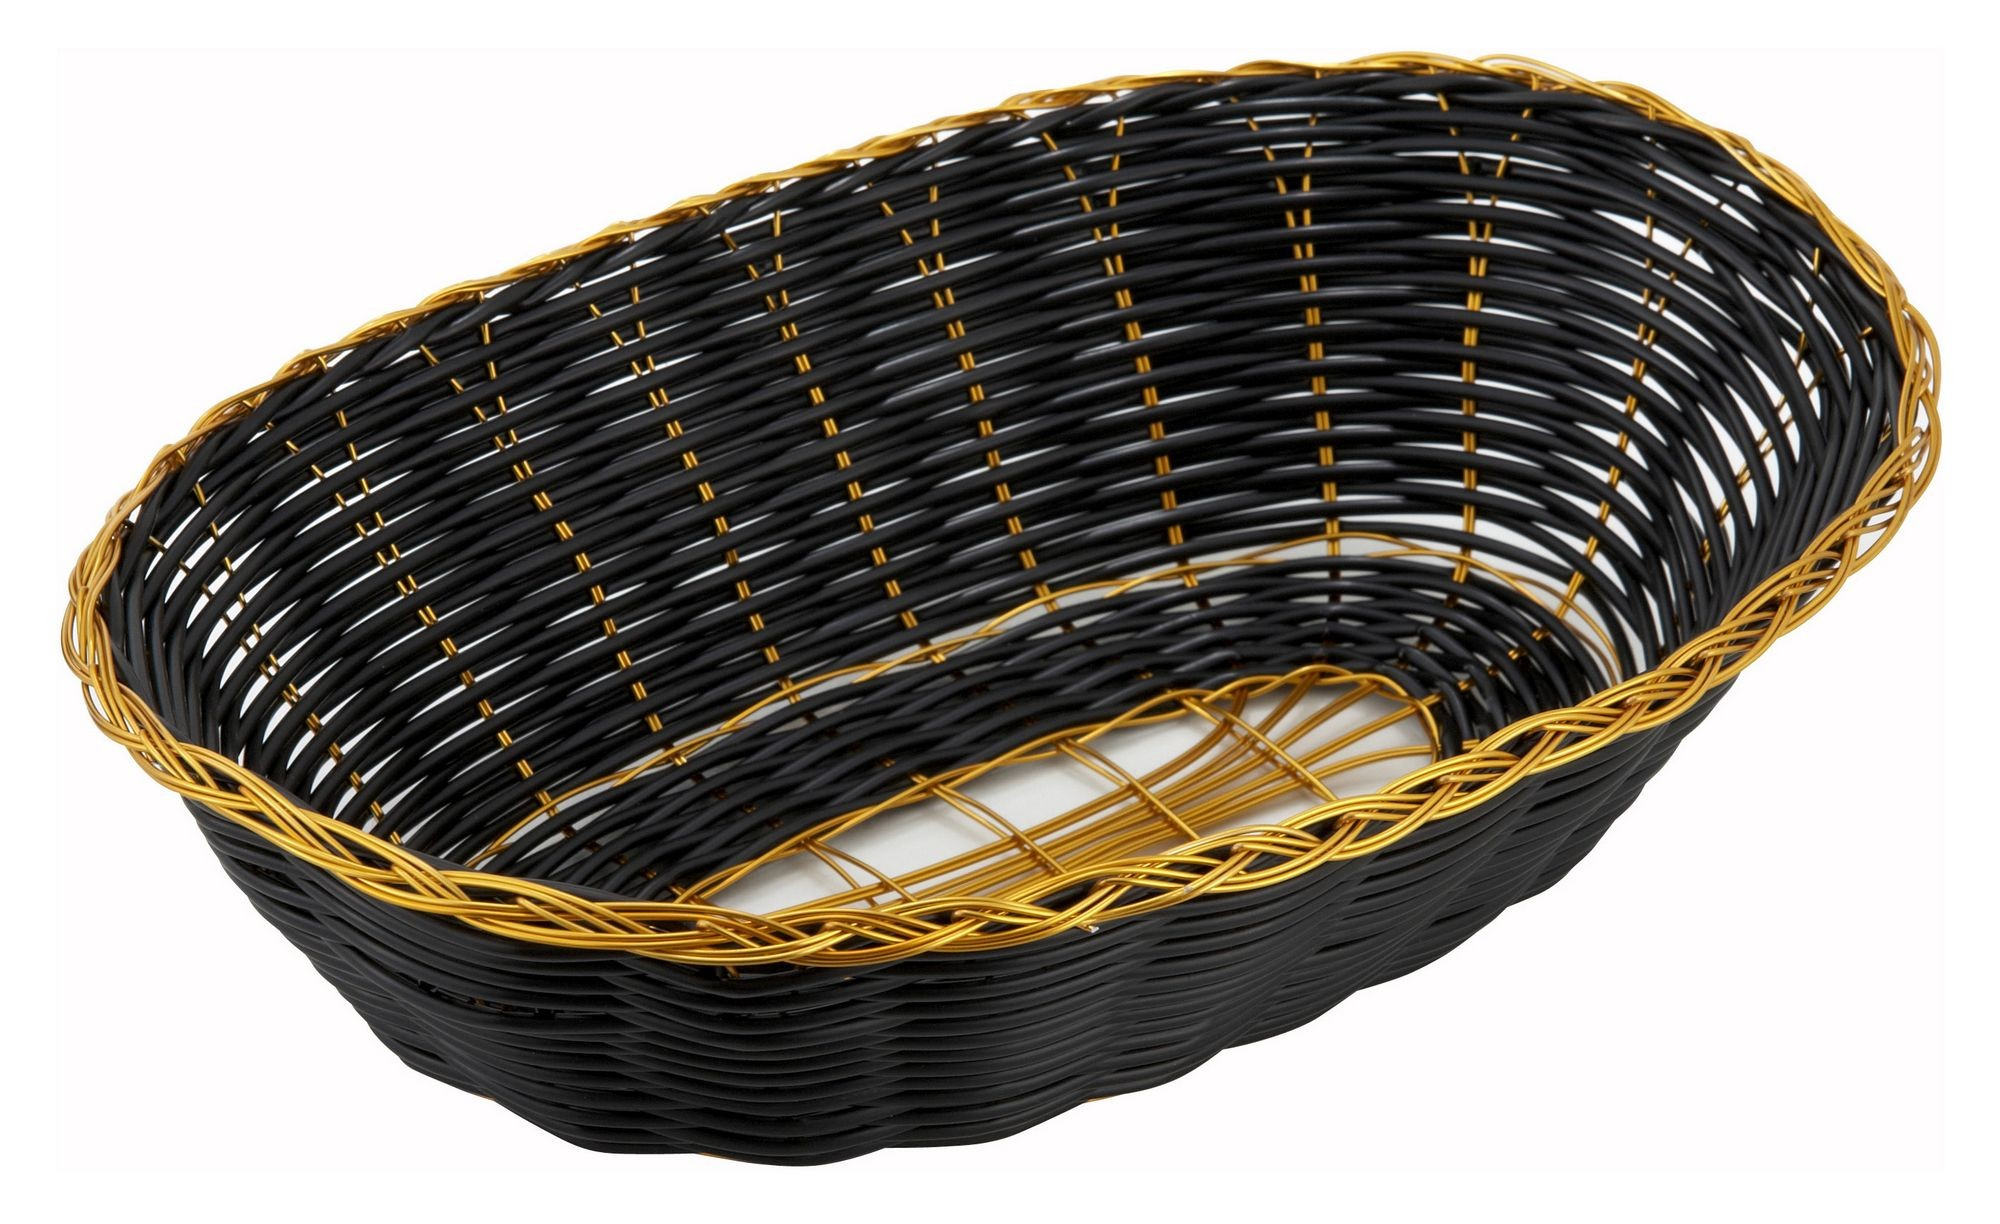 Oval Black Poly Woven Basket With Gold Trim